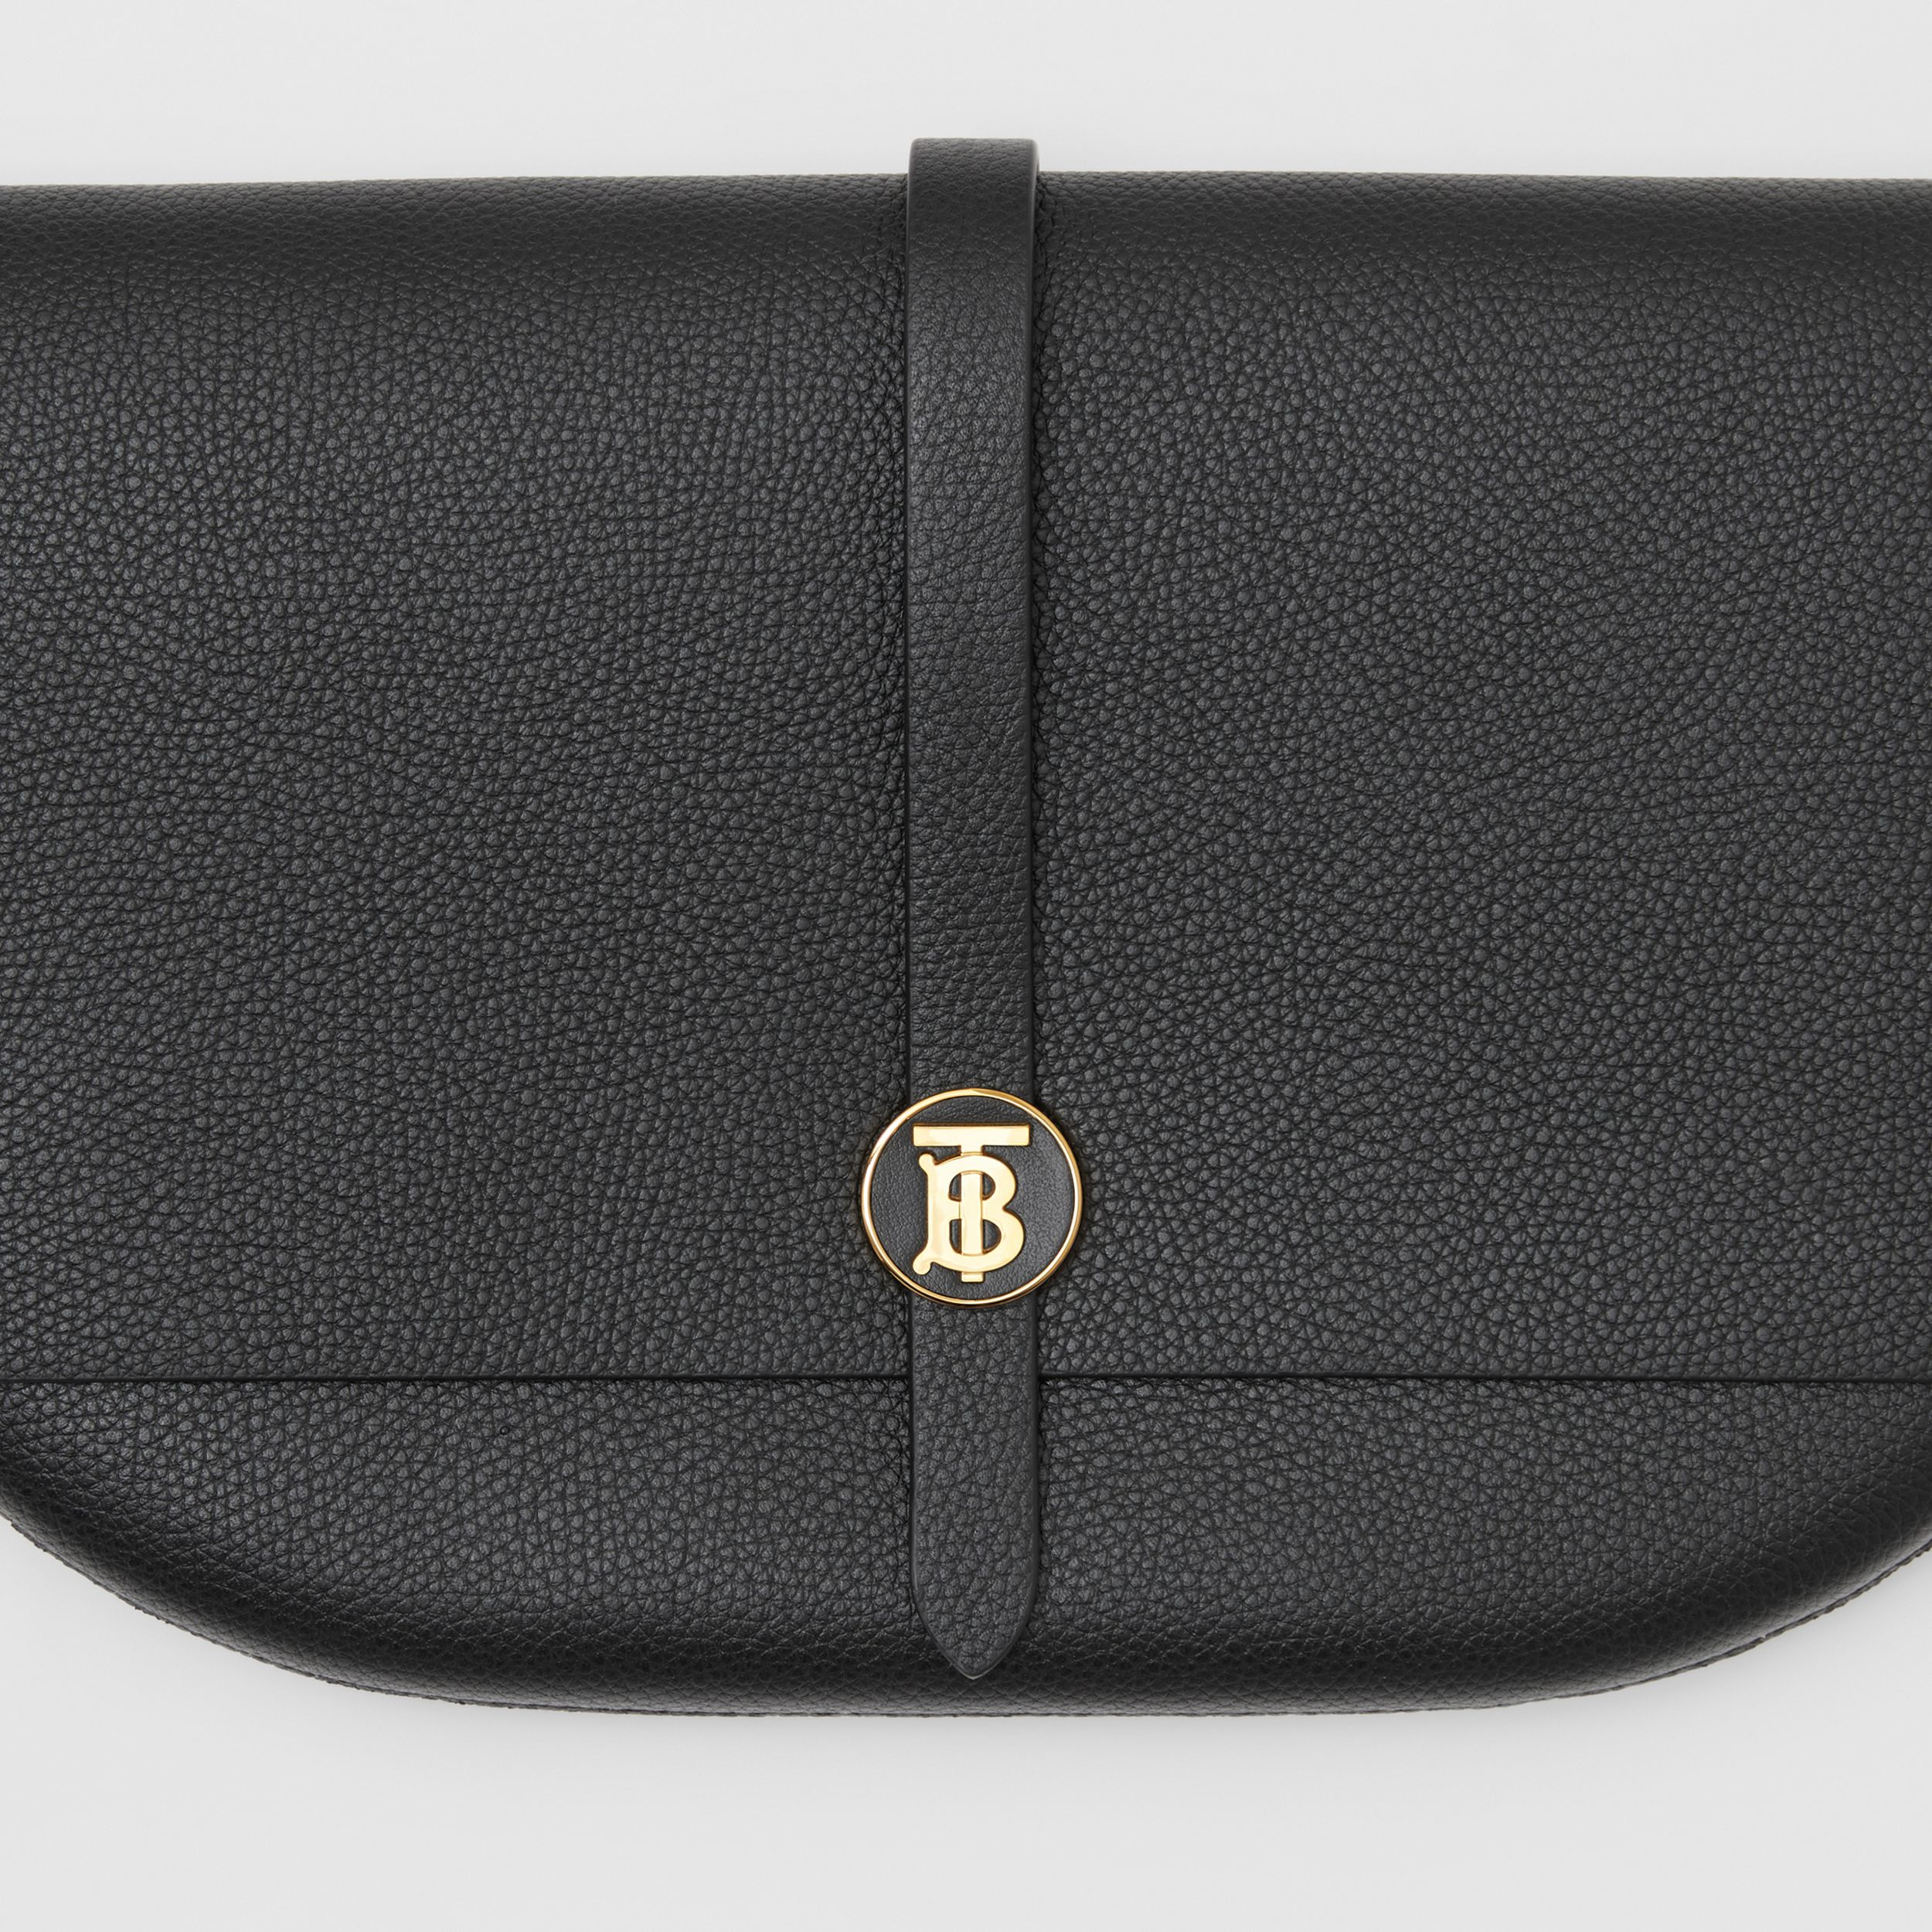 Grainy Leather Anne Clutch in Black - Women | Burberry Australia - 2